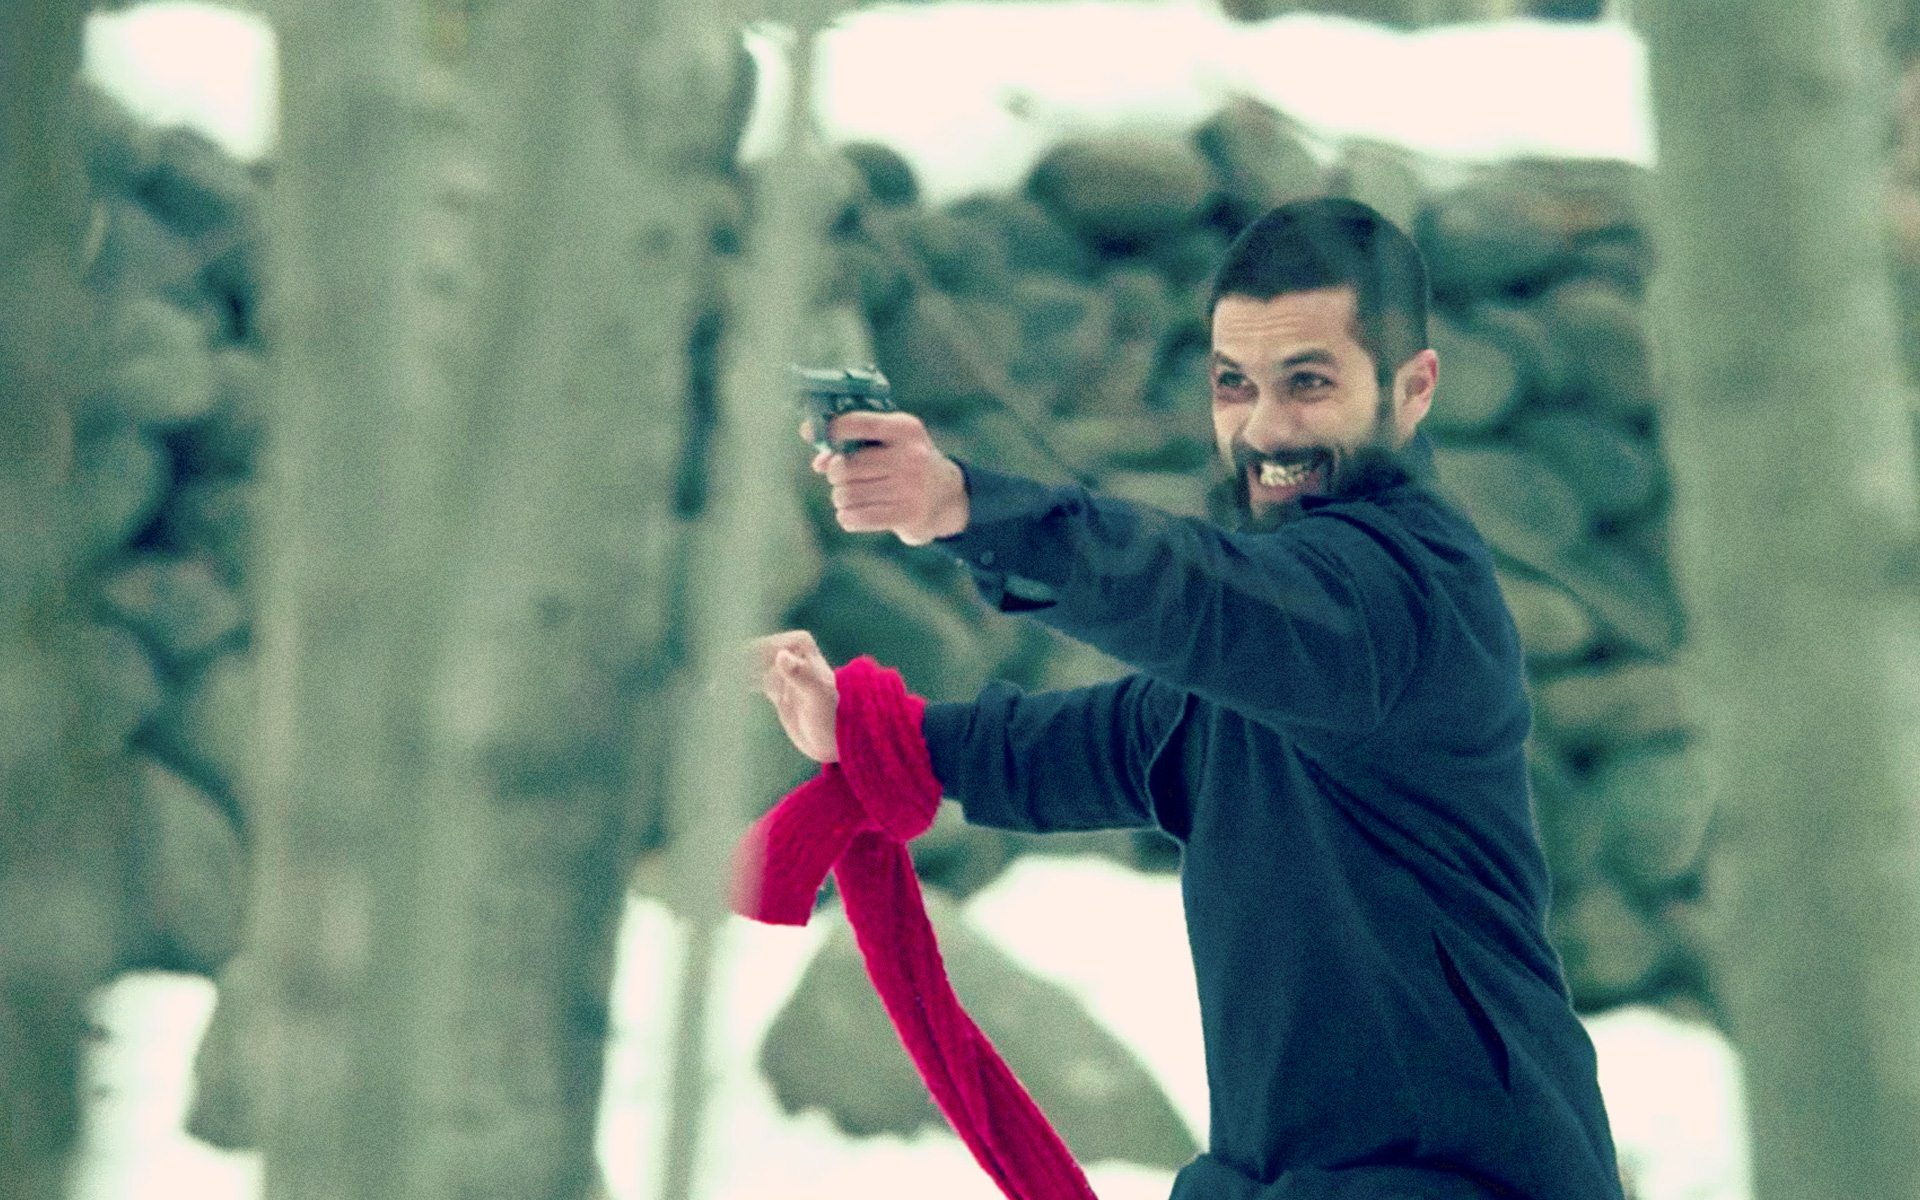 Shahid Kapoor as Haider